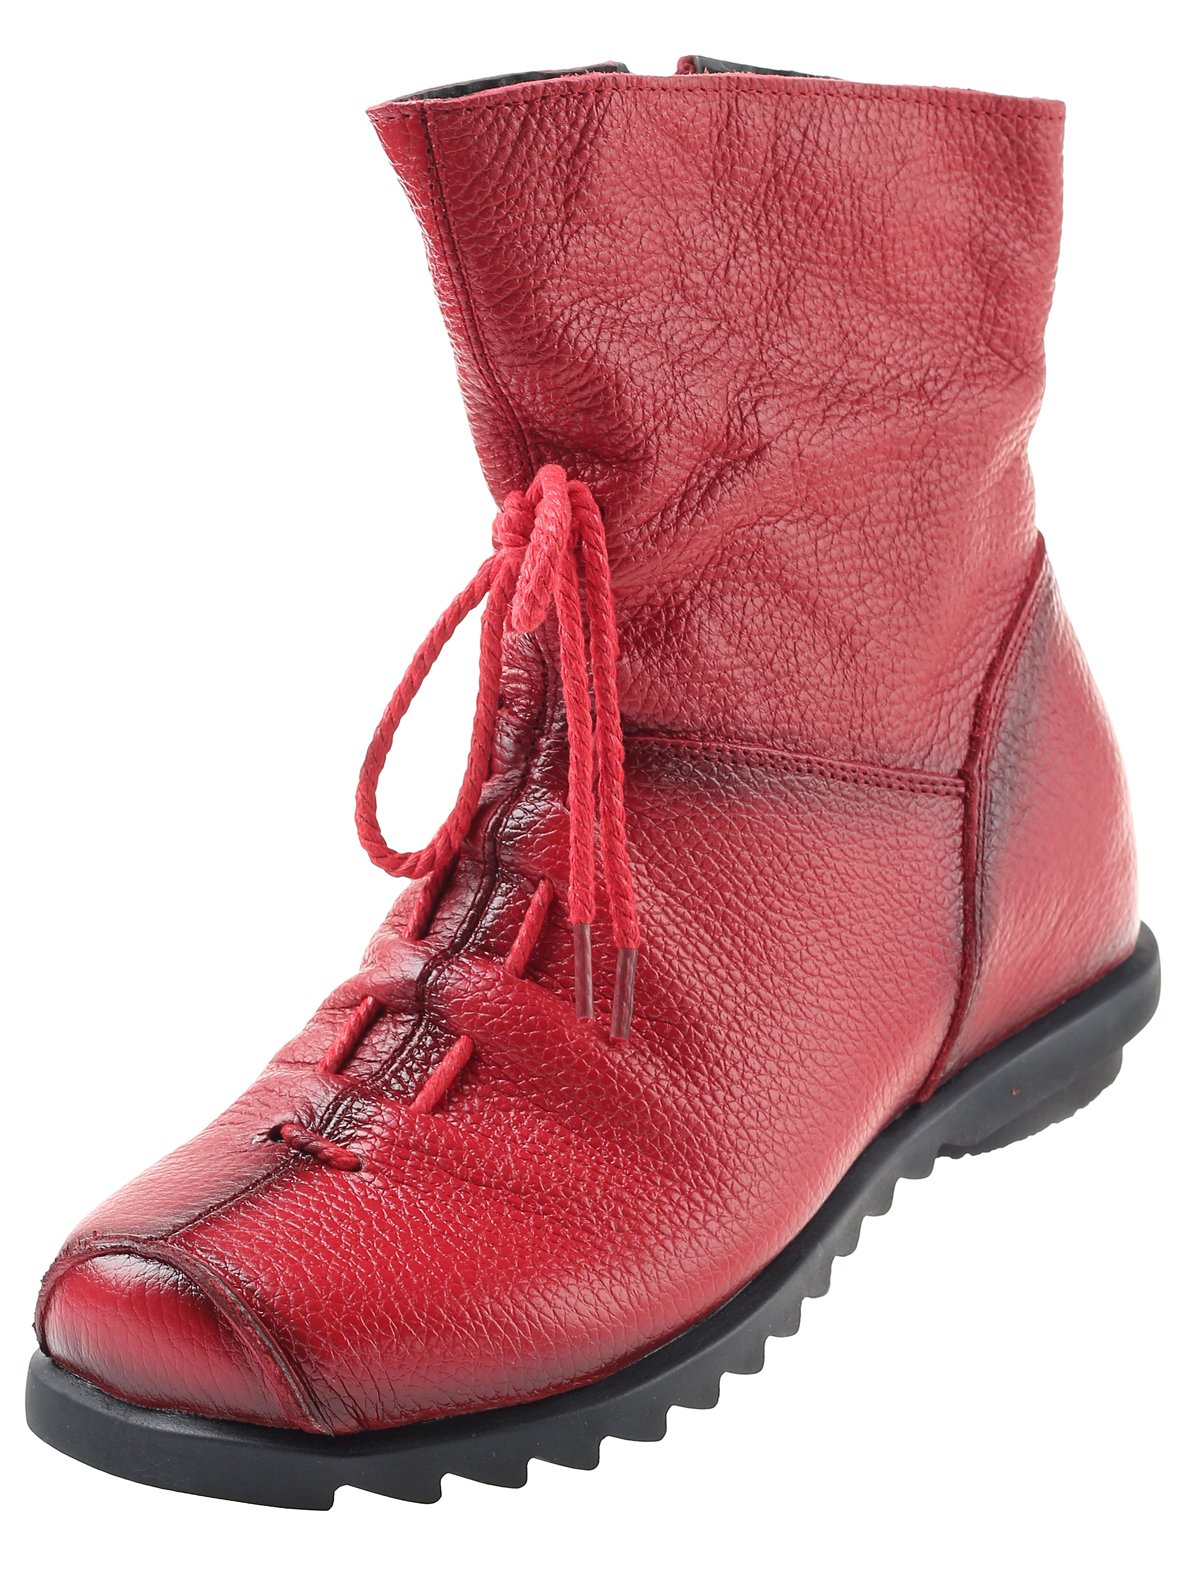 Mordenmiss Women's Side Zipper Leather Ankle Toe Cap Boot Style 2-Red-Fleece-41